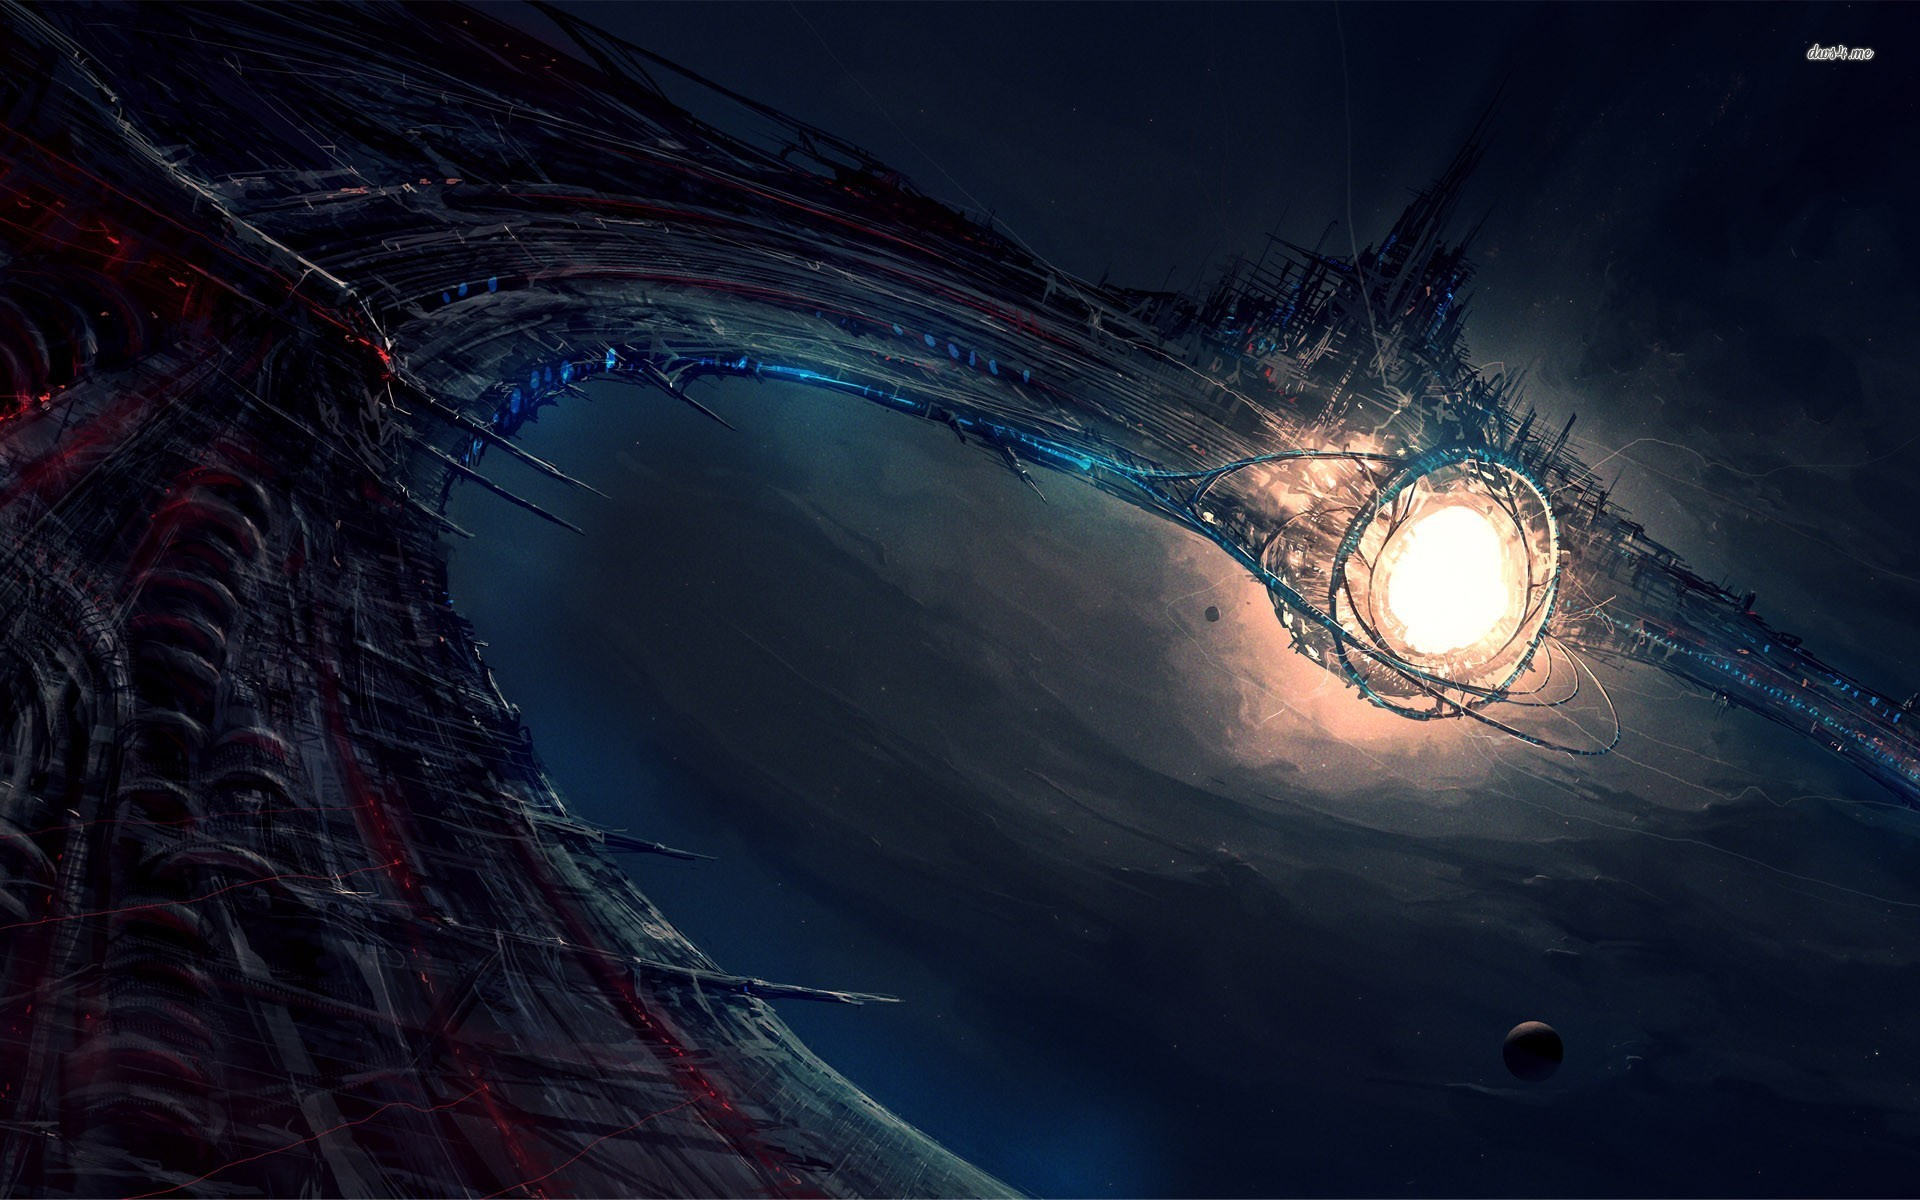 Space station wallpape...